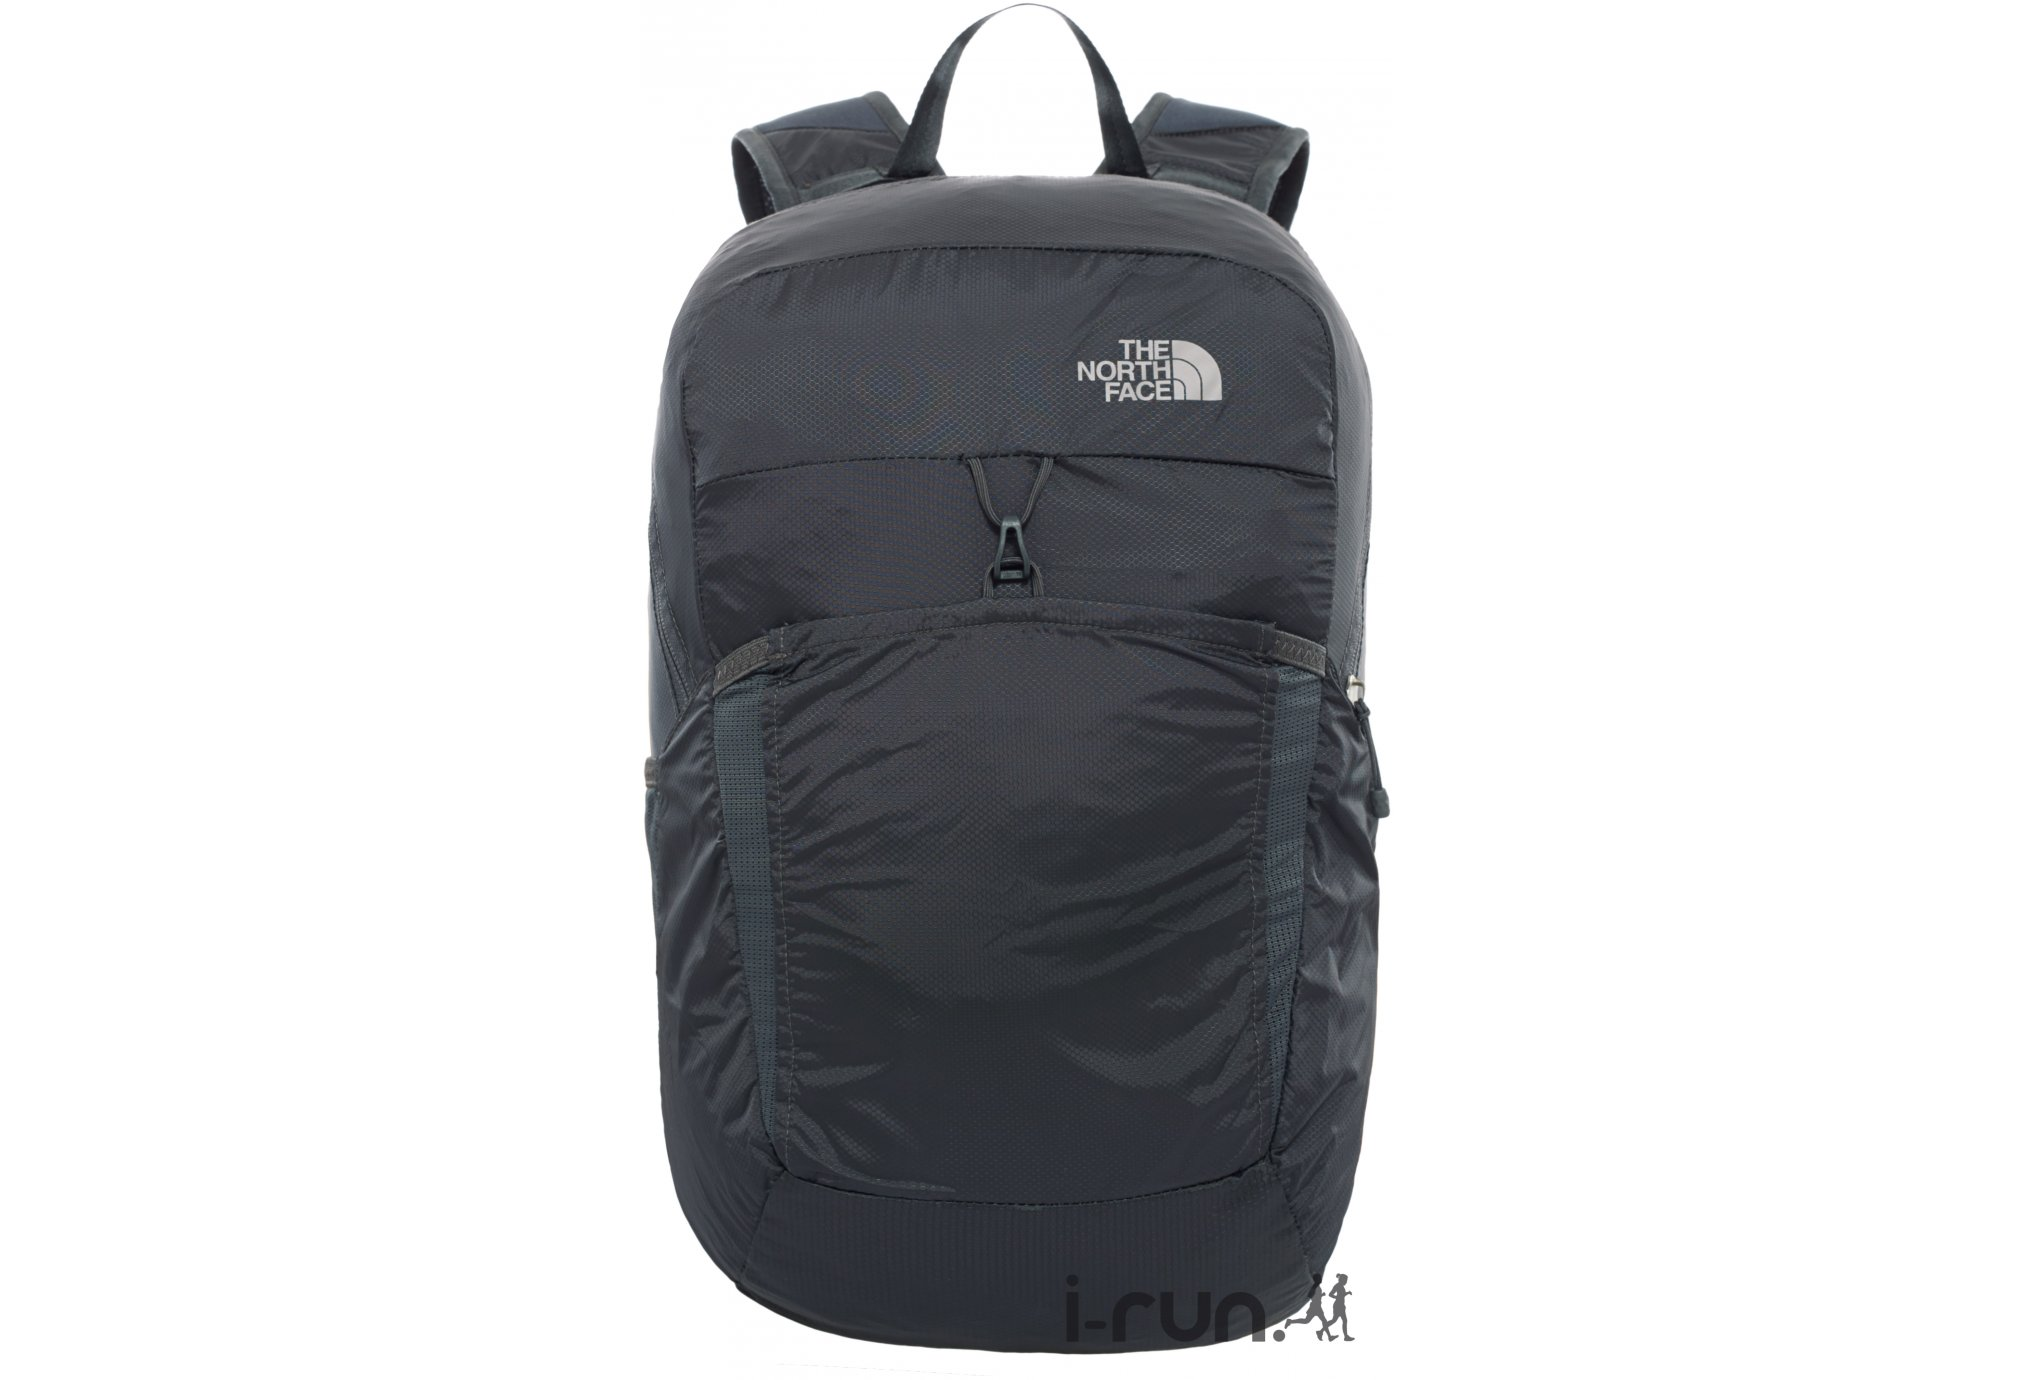 Sac A Dos De Voyage A Roulette Sac Roulette North Face 42 Luxury Sac De Voyage Roulette North Face